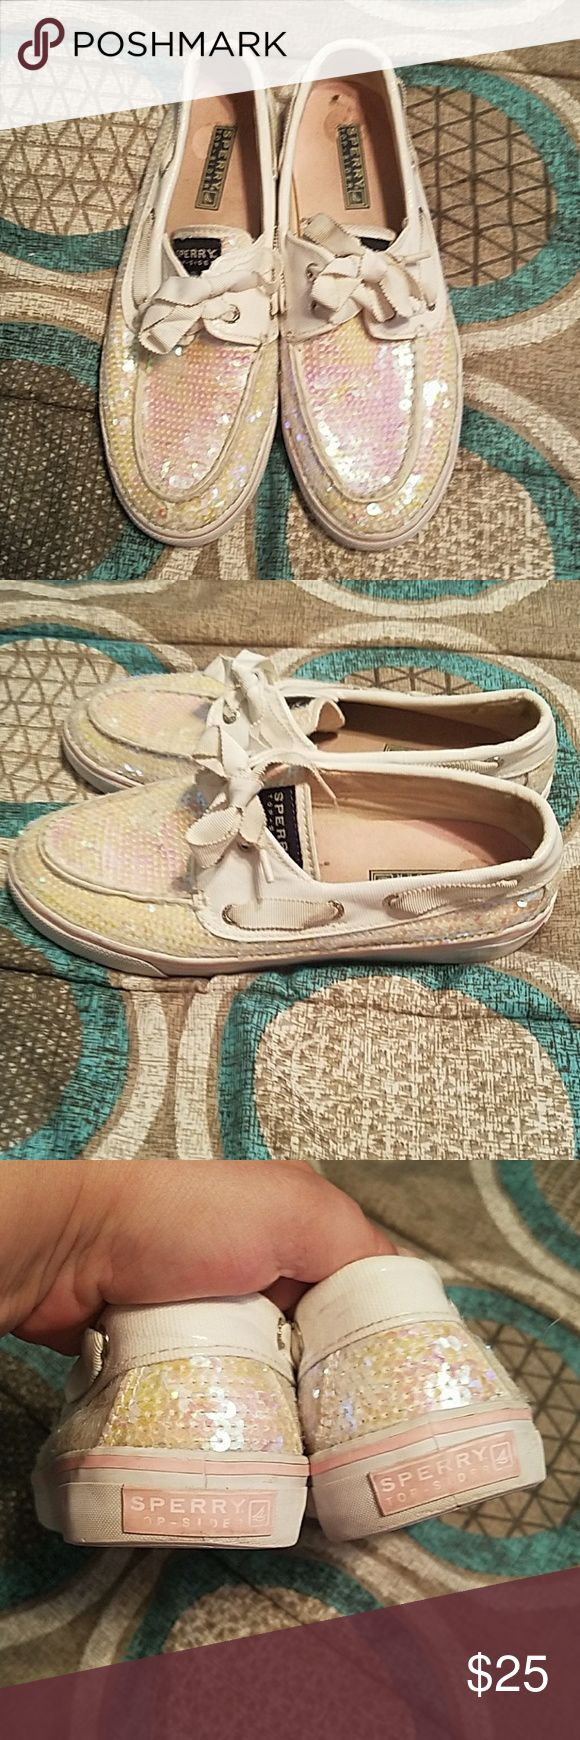 Sperry top sider shoes Sperry top sider shoes. They are in very good condition. Size 7 Sperry Top-Sider Shoes Flats & Loafers